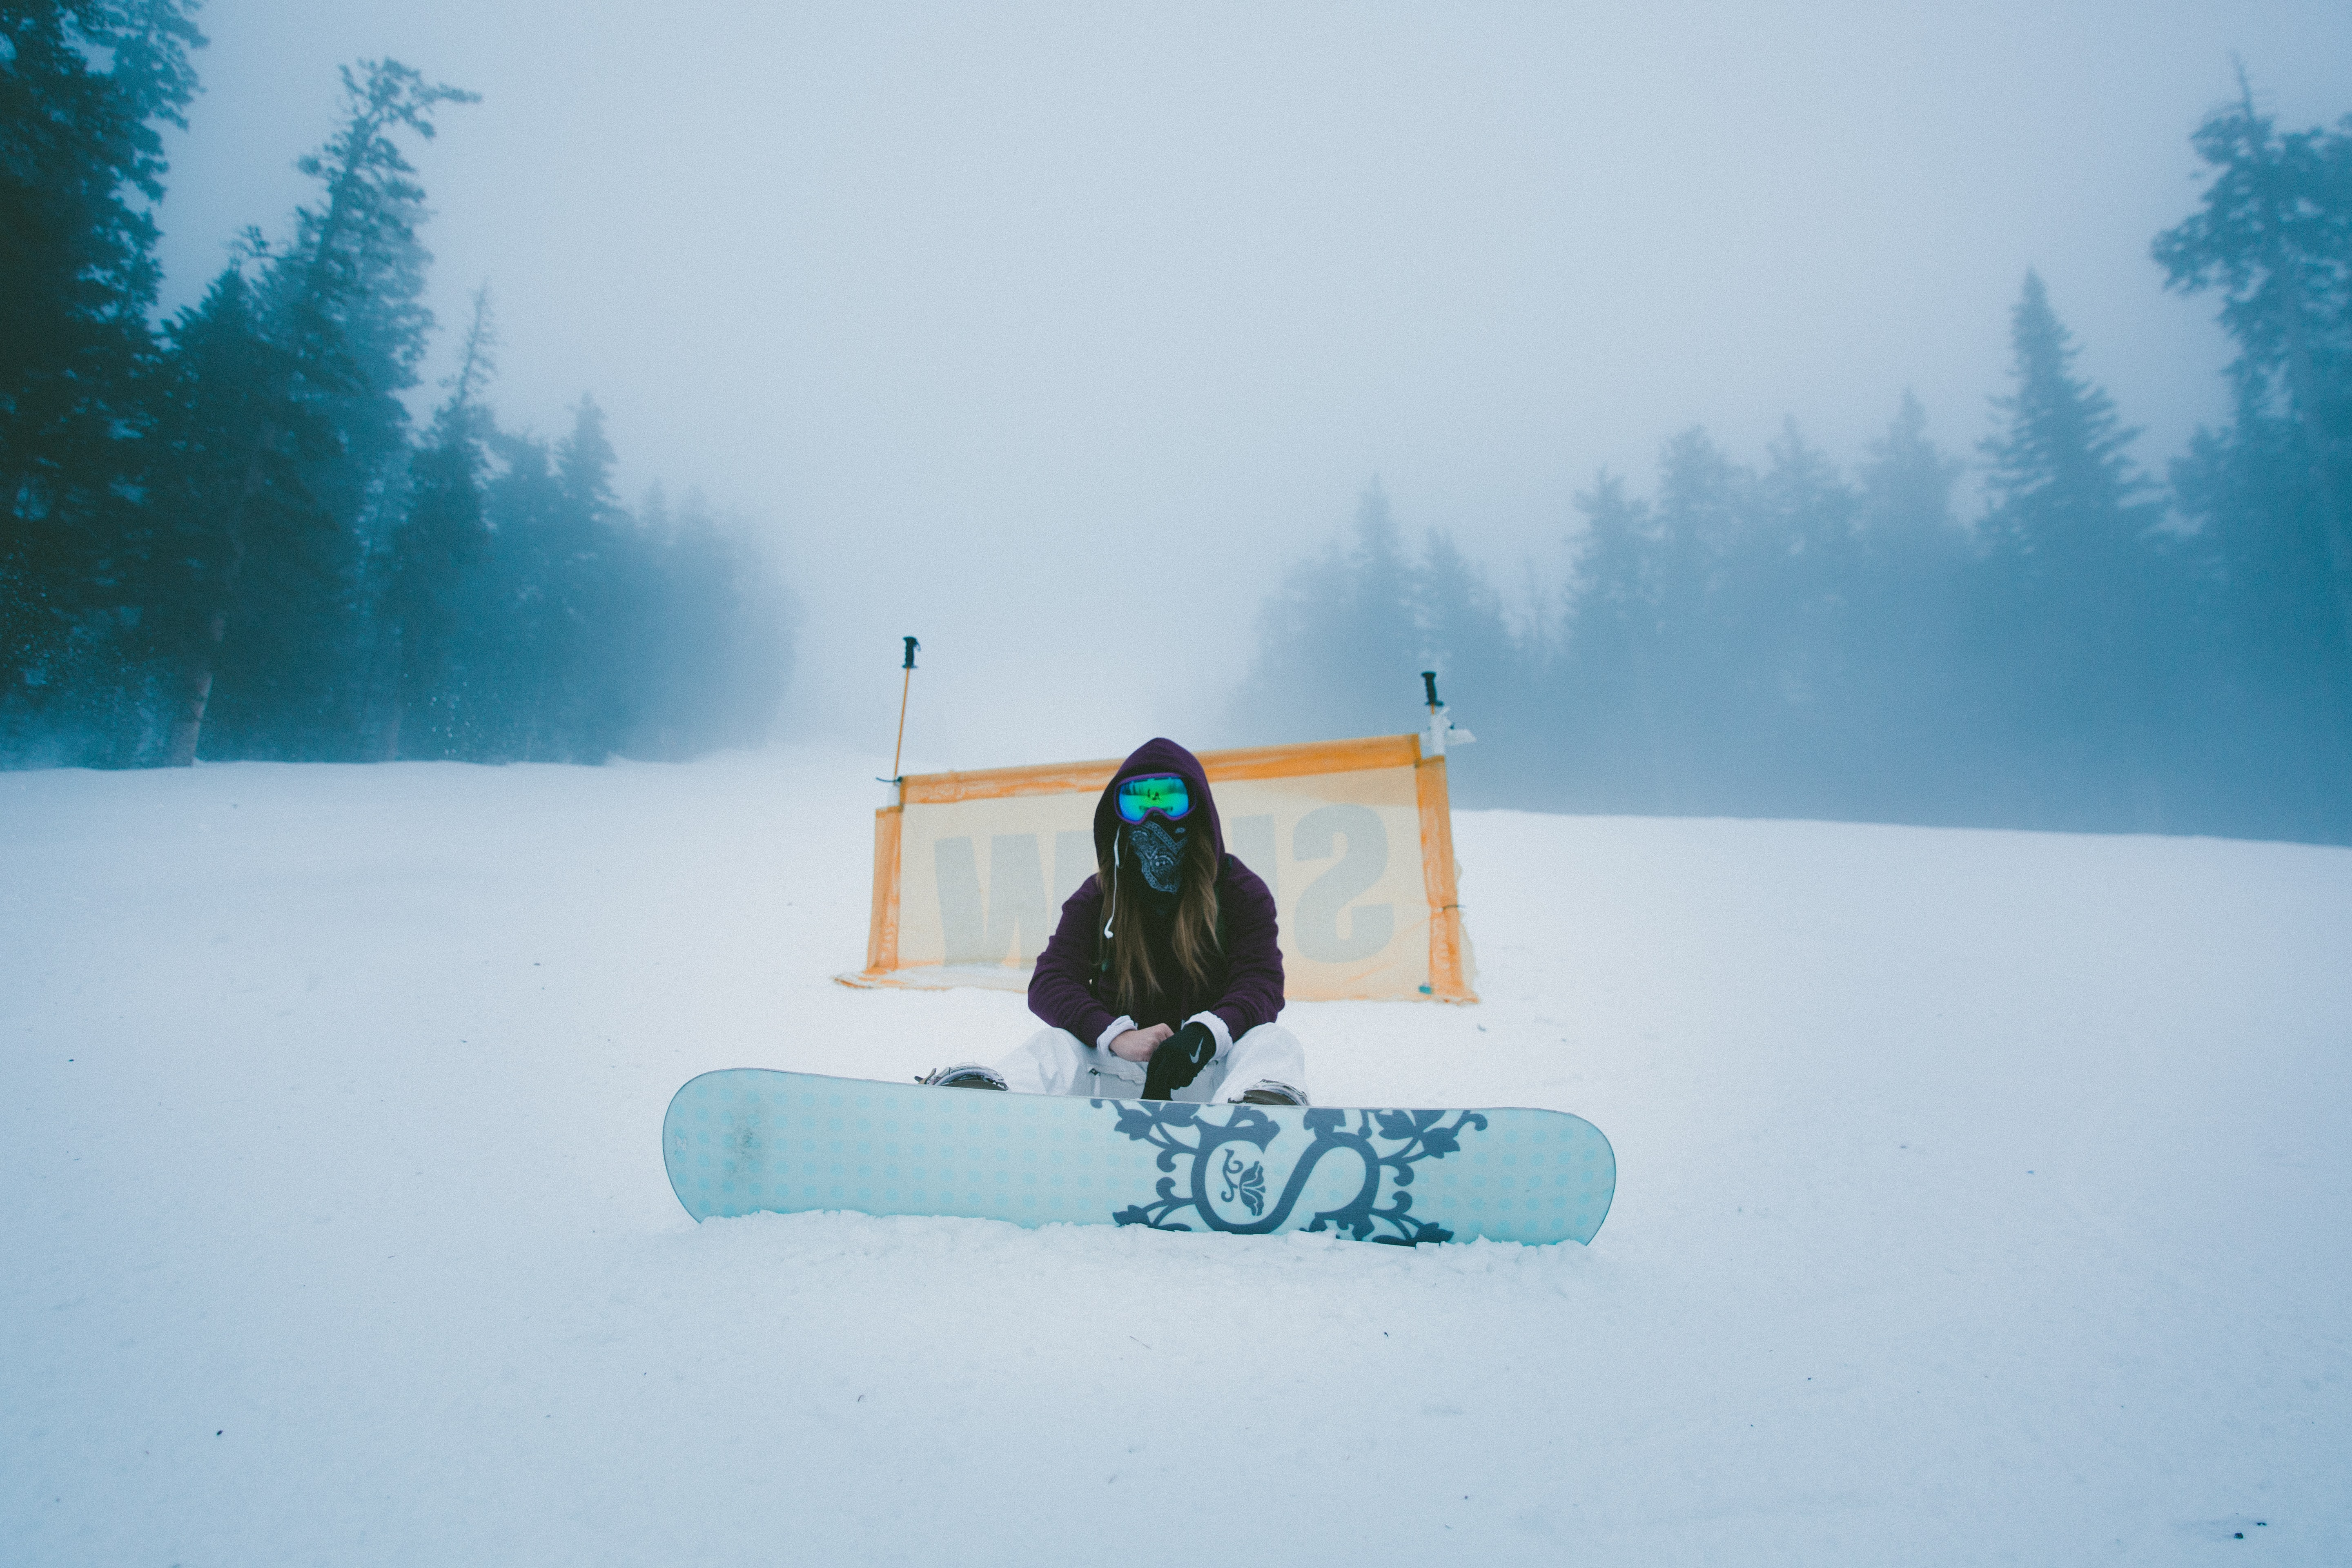 A man sitting with his snowboard at thes starting point on a ski hill